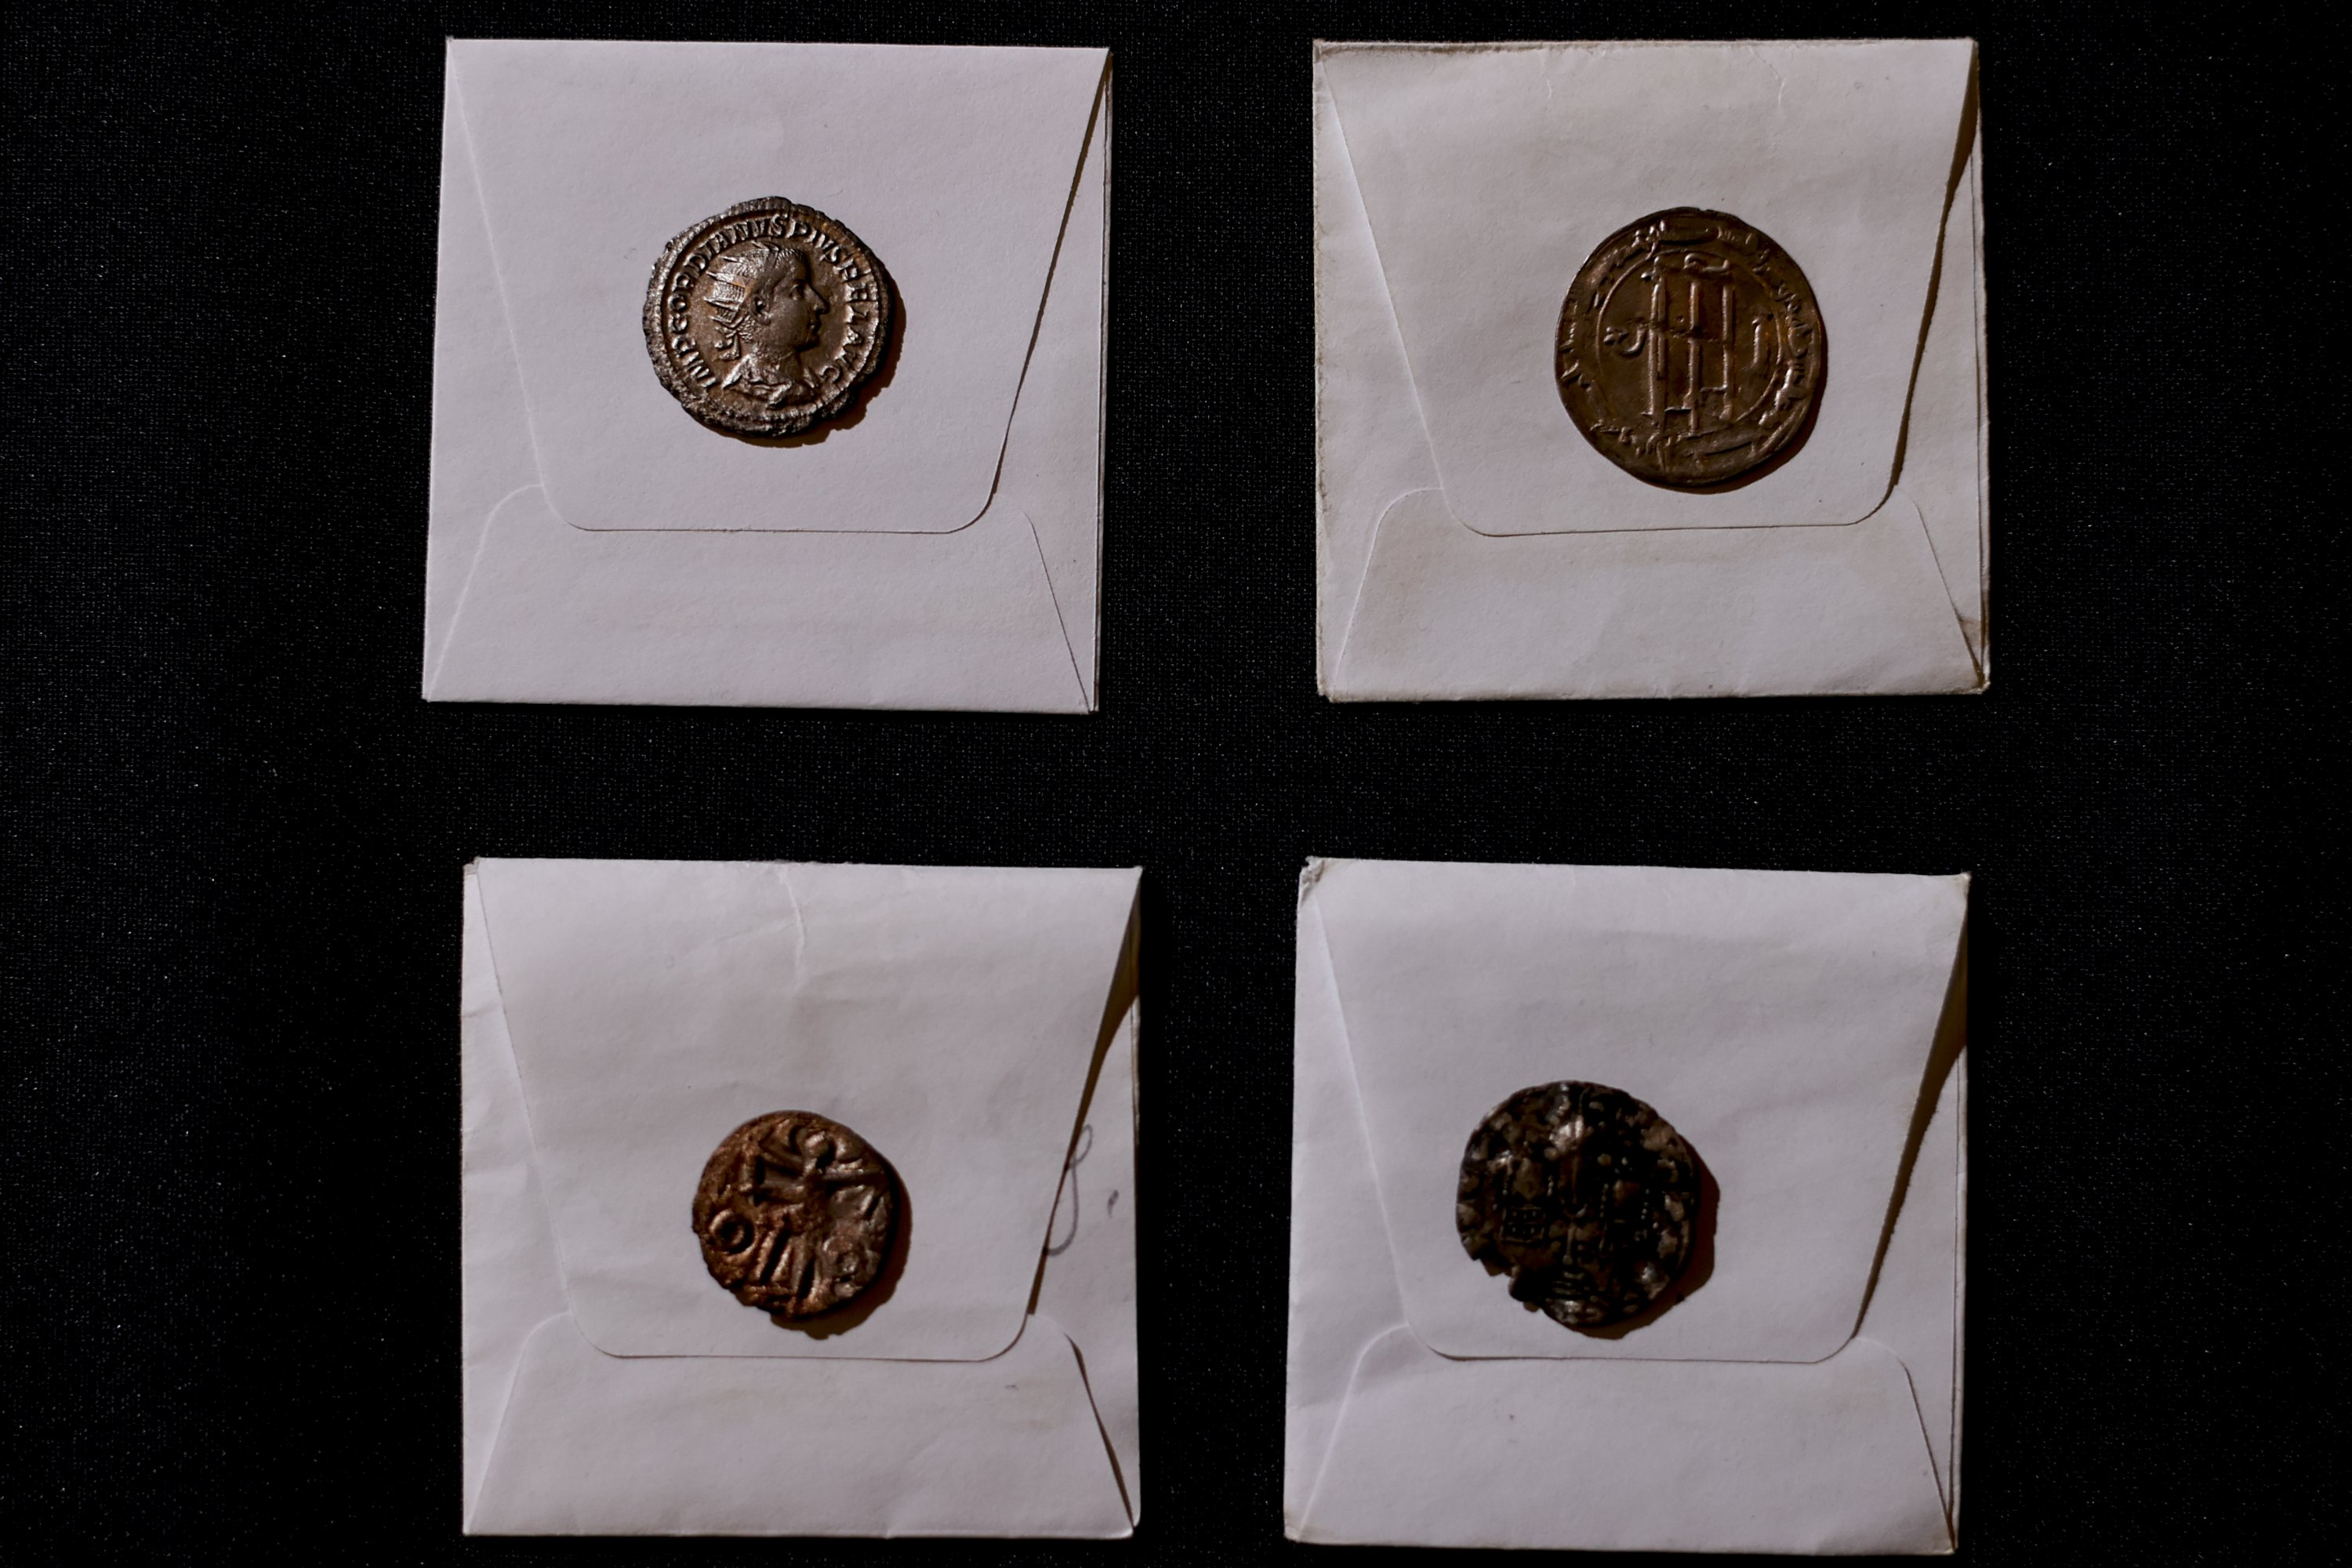 Coins found in the ancient city of Phanagoria, Russia, Oct. 1, 2021. (AA Photo)